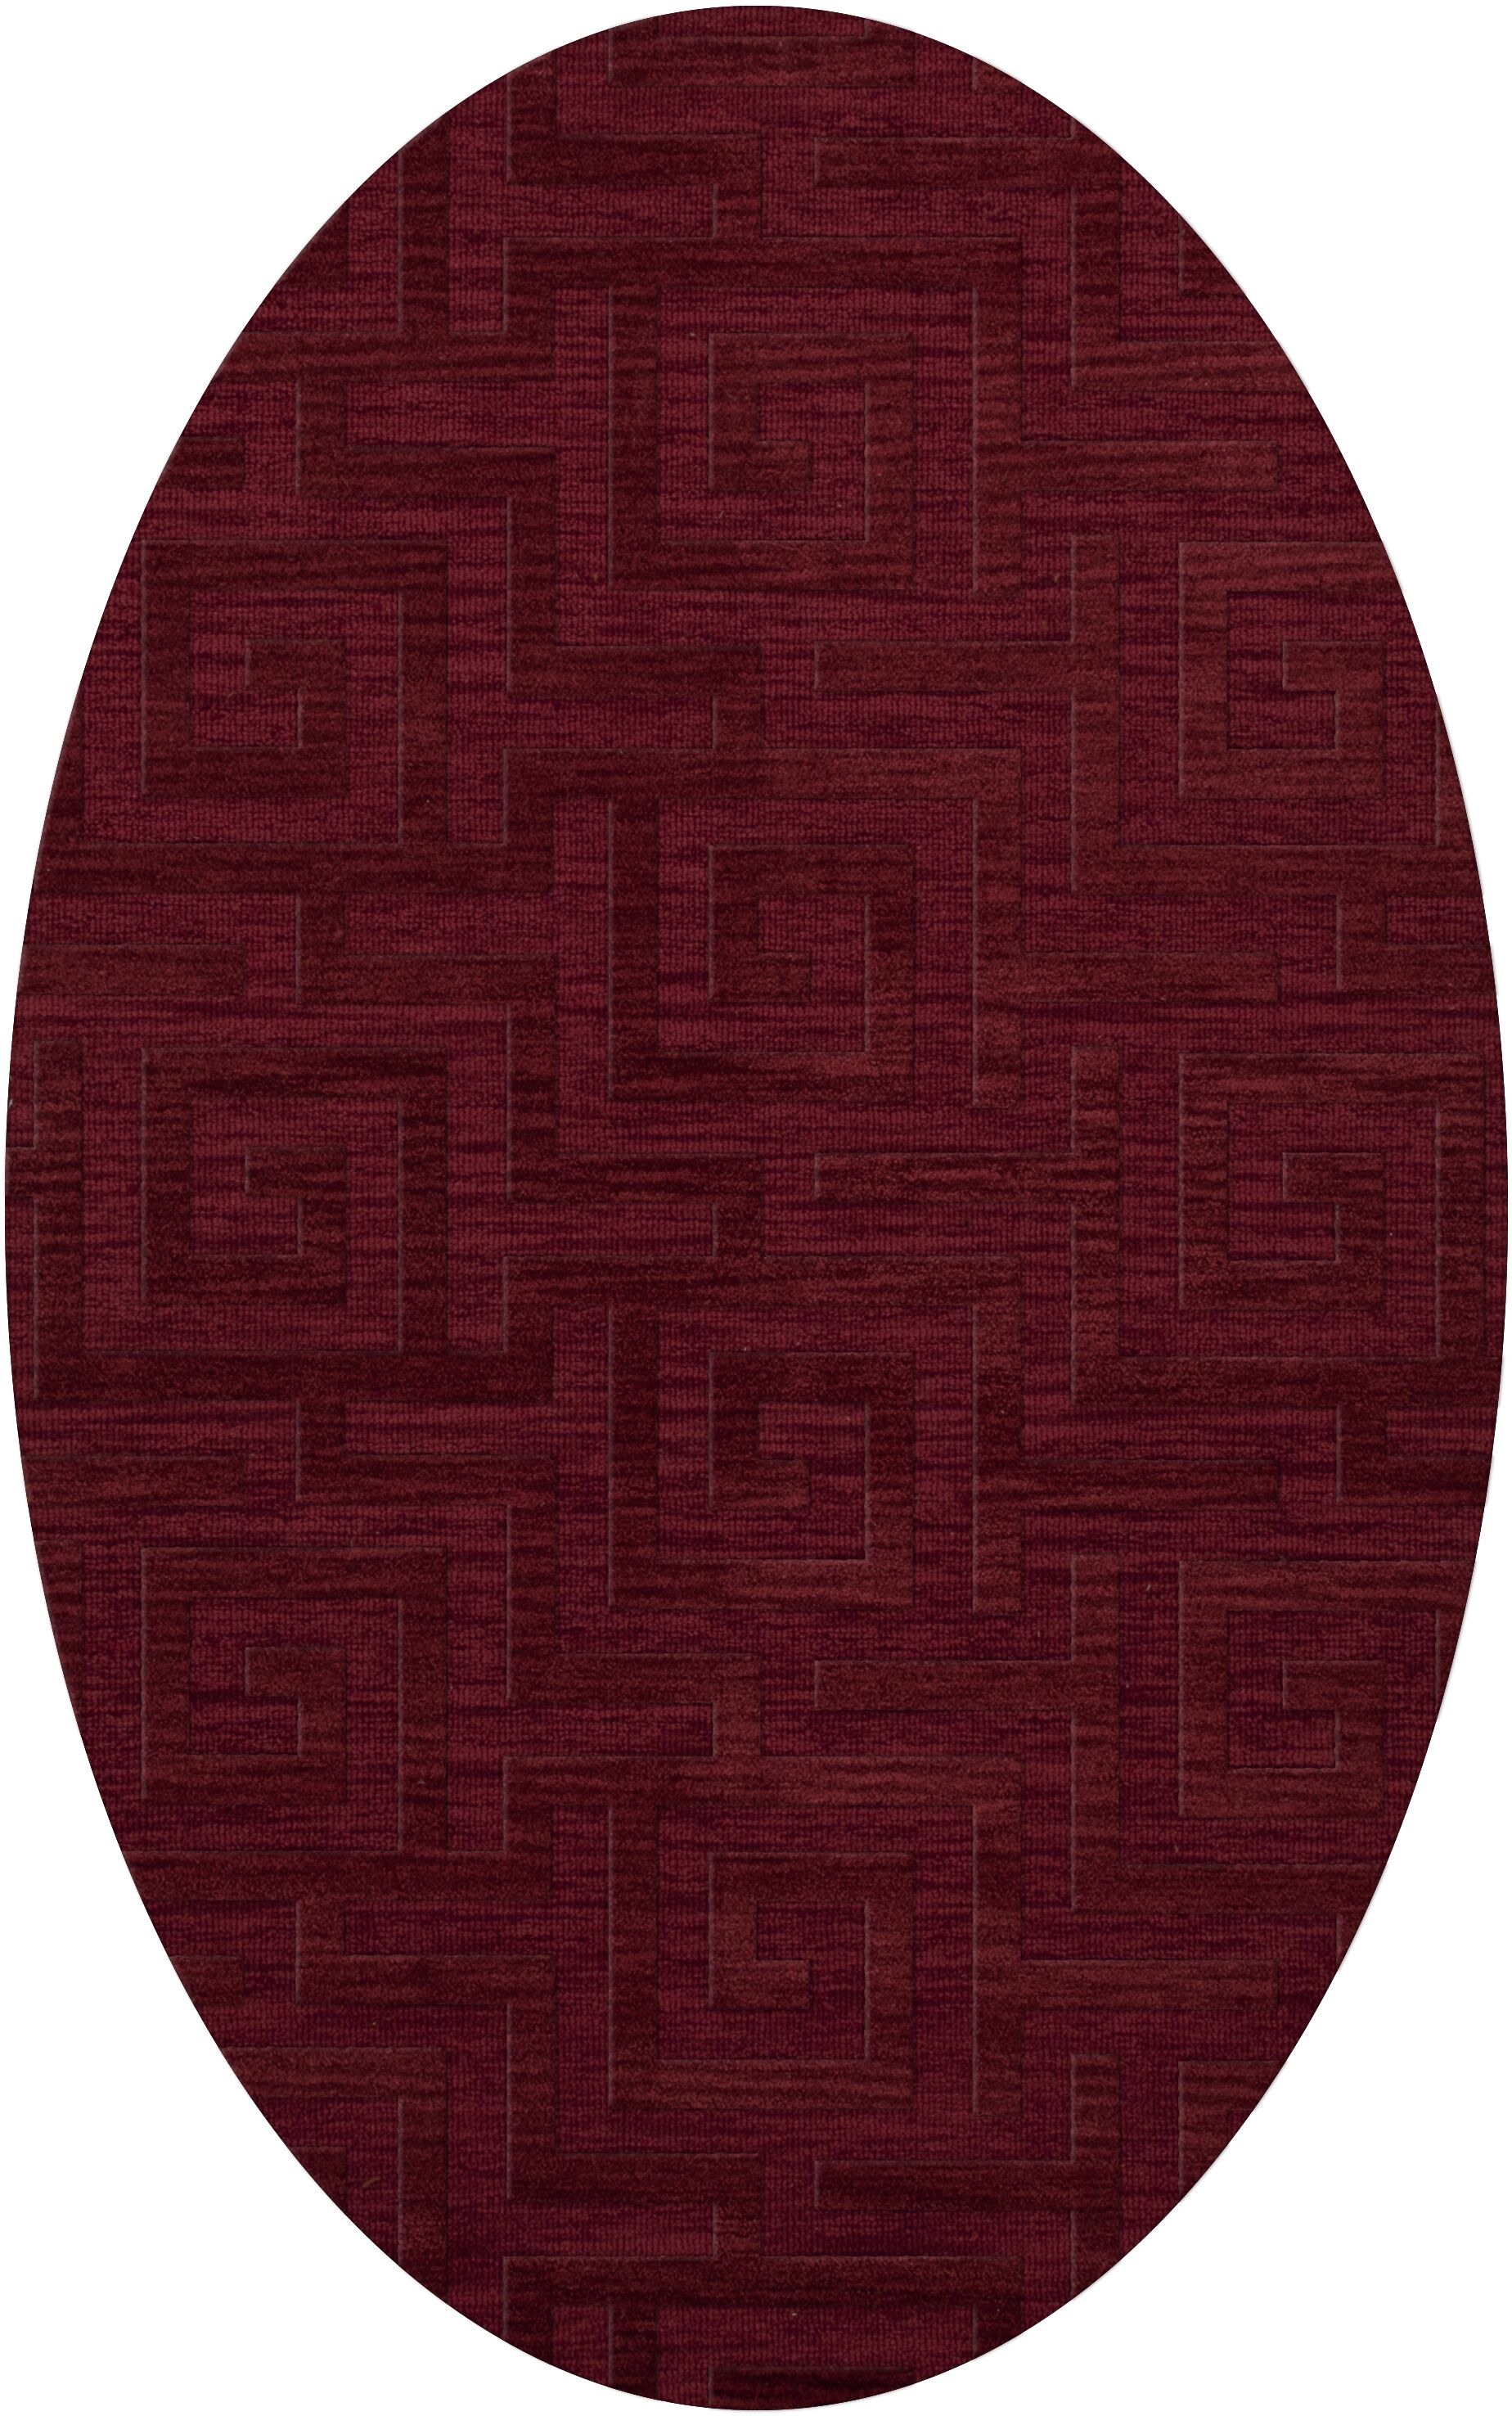 Dover Tufted Wool Rich Red Area Rug Rug Size: Oval 5' x 8'